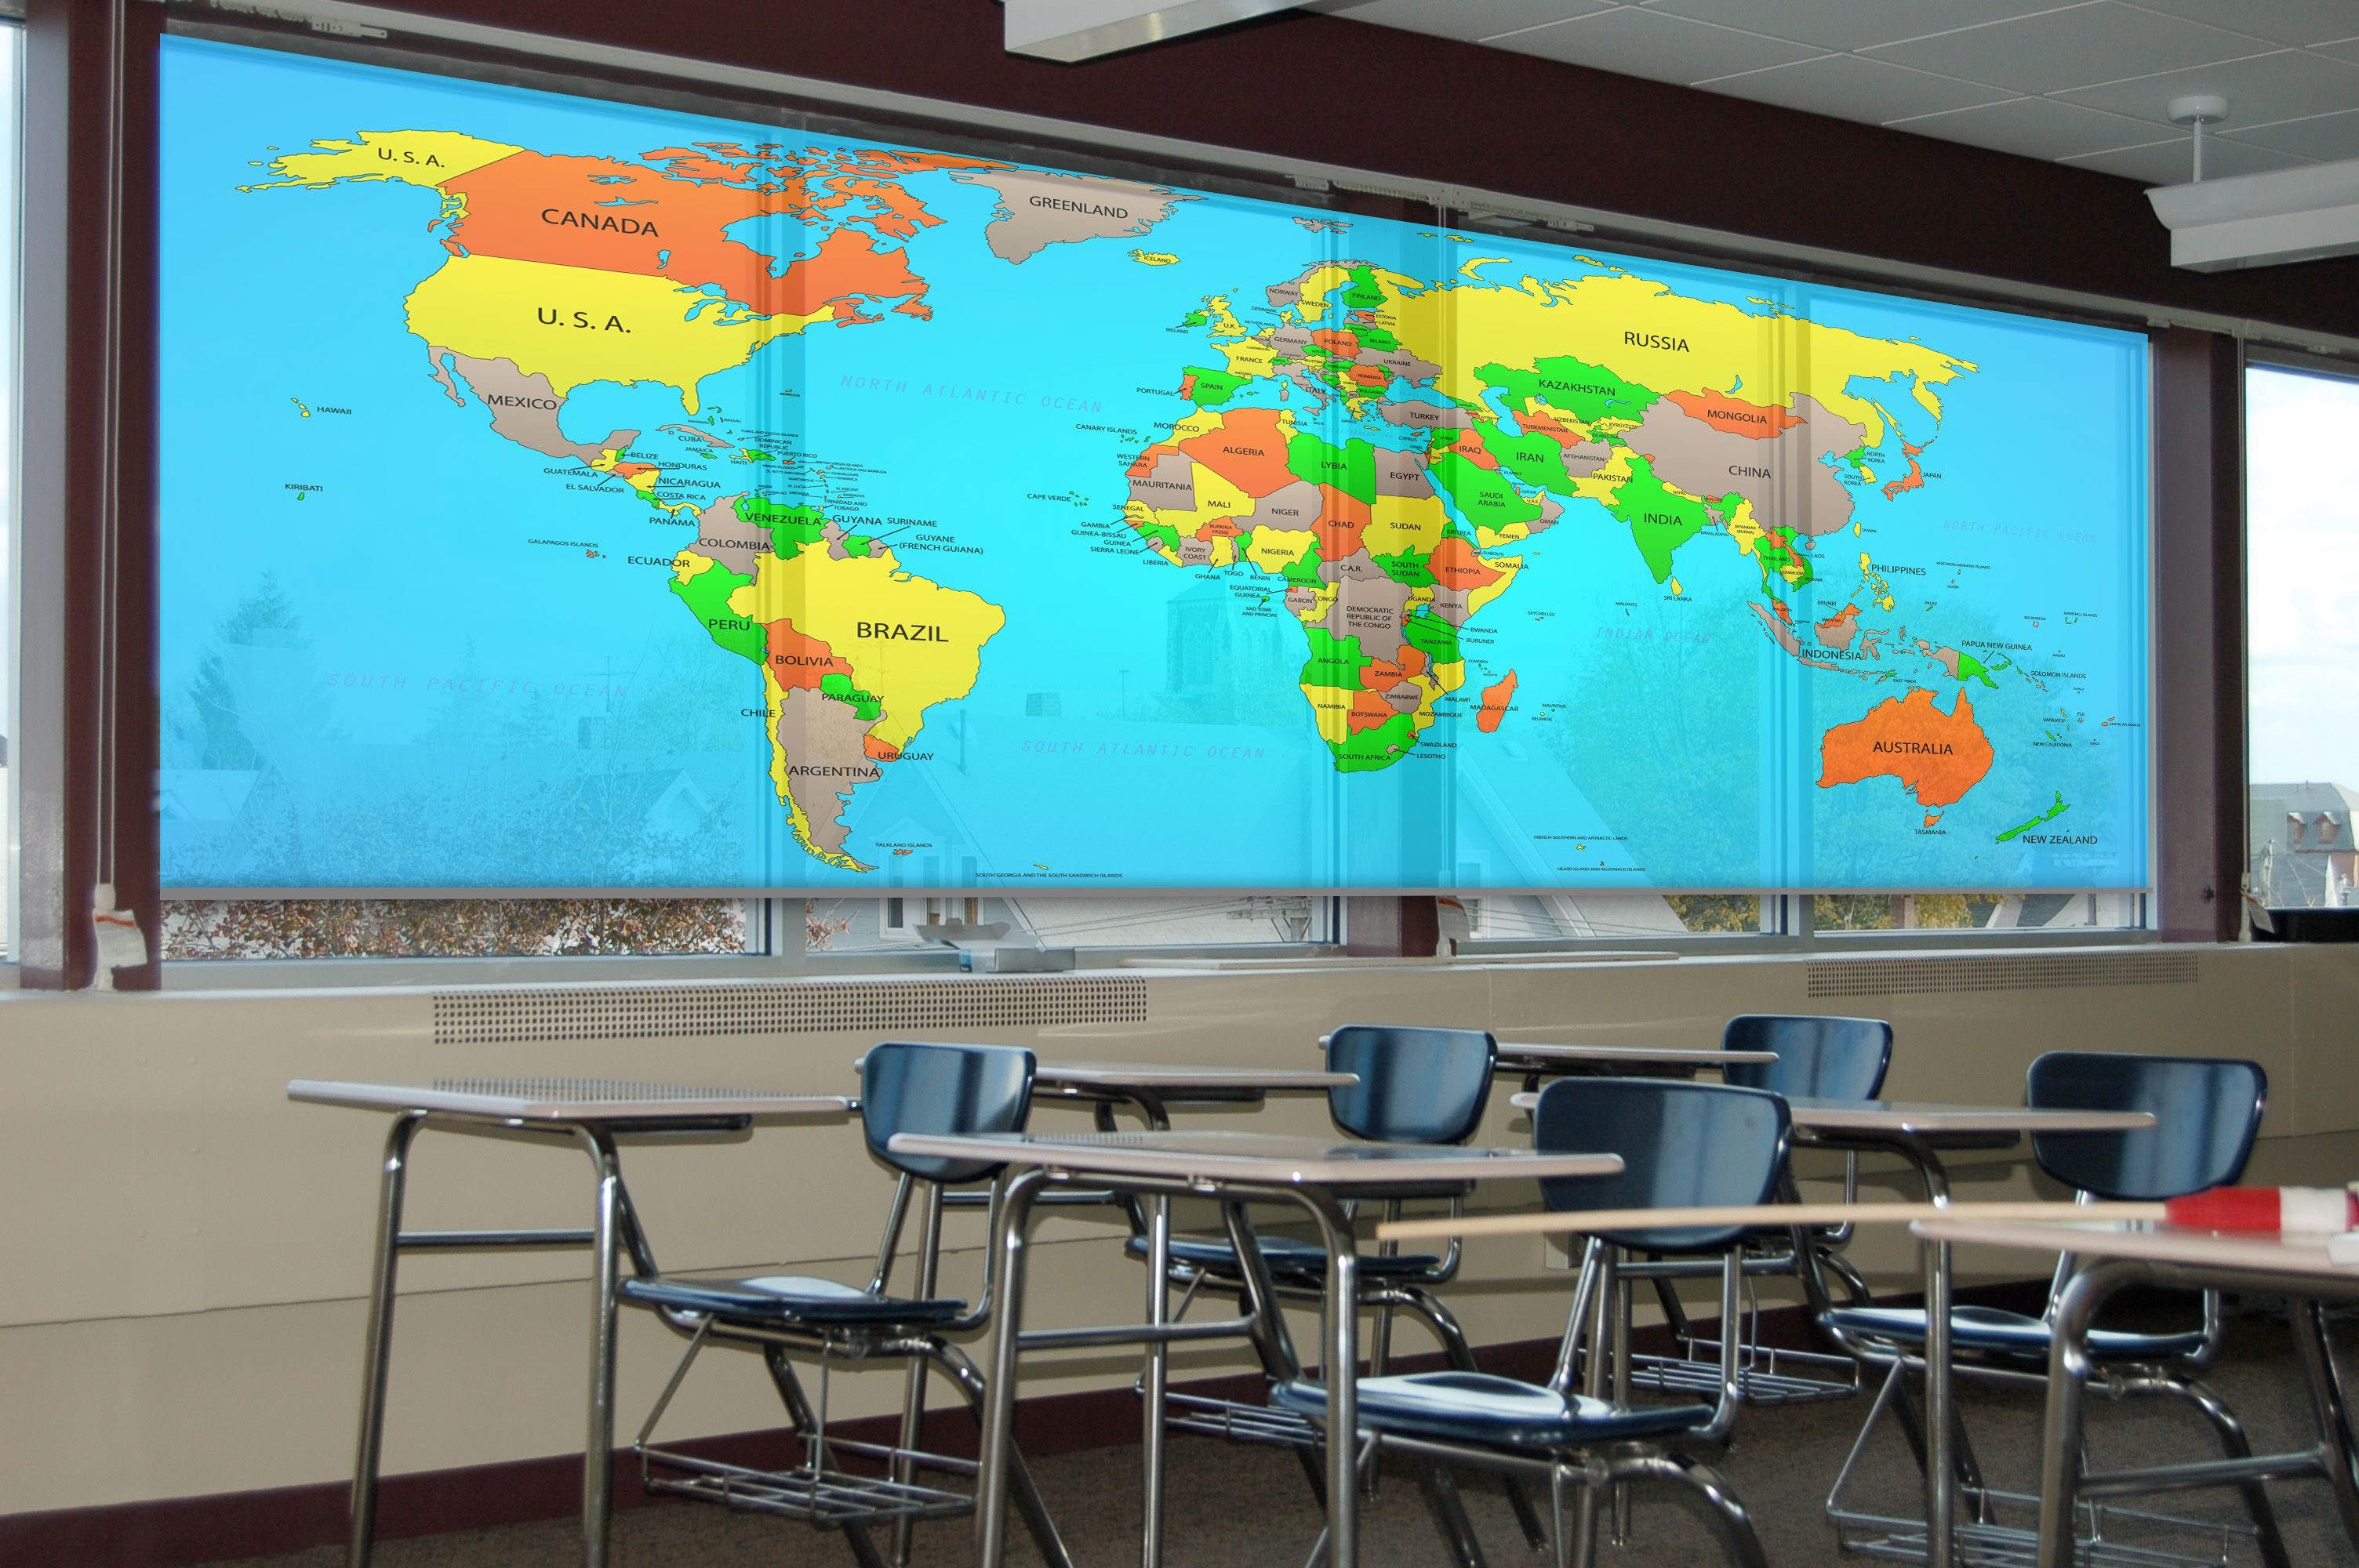 Map Of The World On A Custom Printed Roller Blind In Class